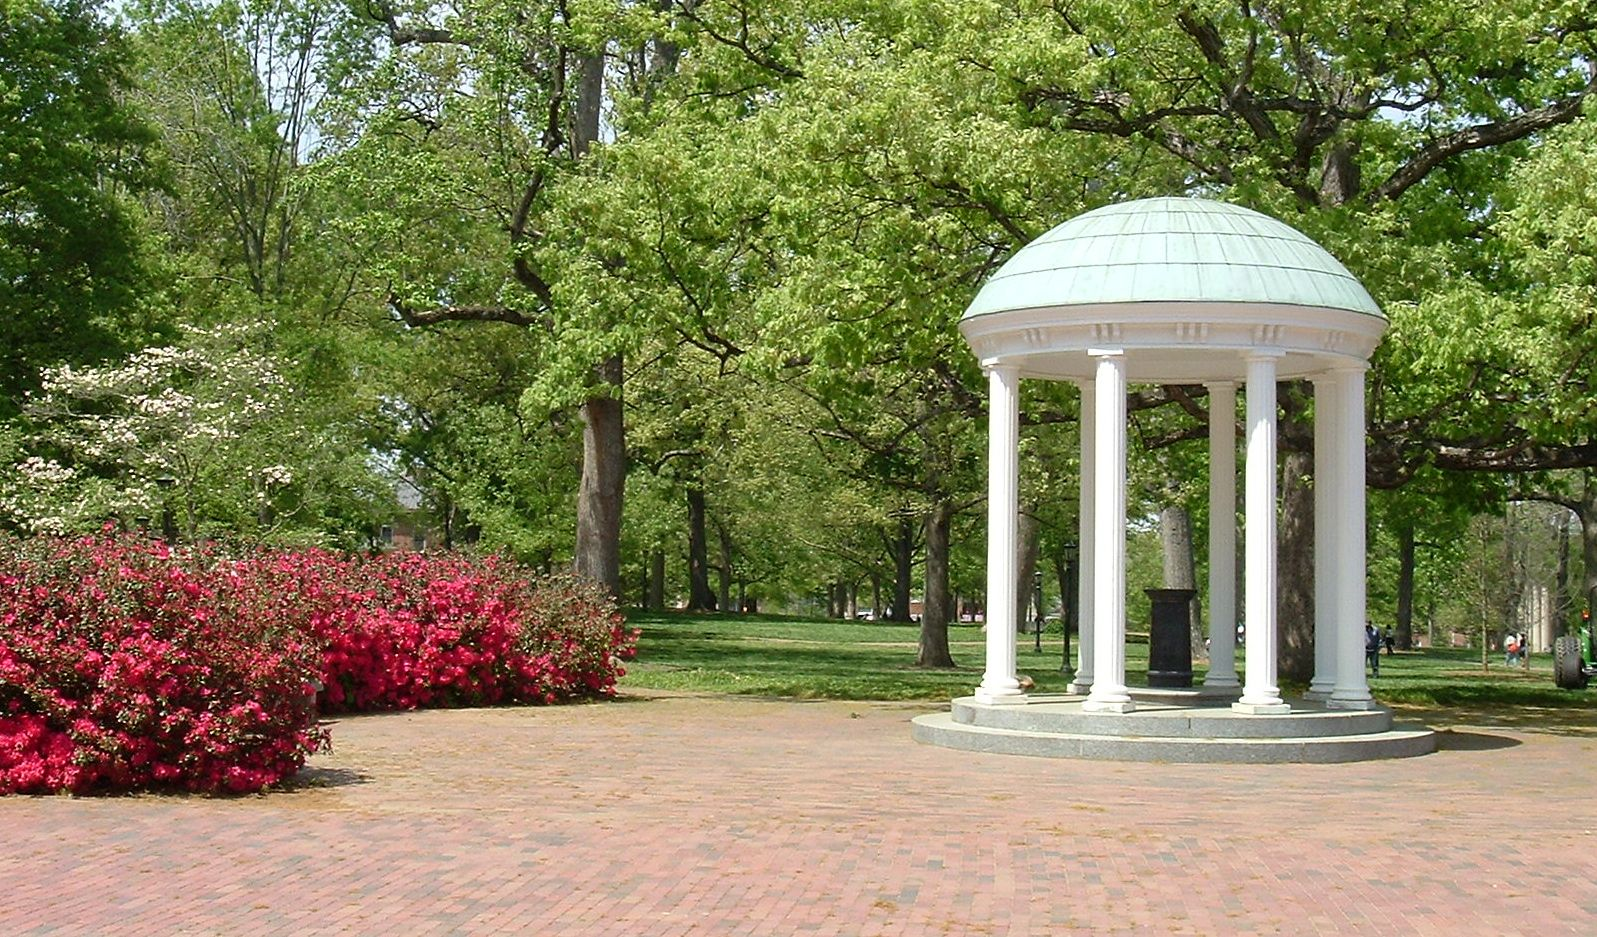 Pin By Rhonda Hartzell On Favorite Places And Spaces Unc Chapel Hill Cool Places To Visit Favorite Places